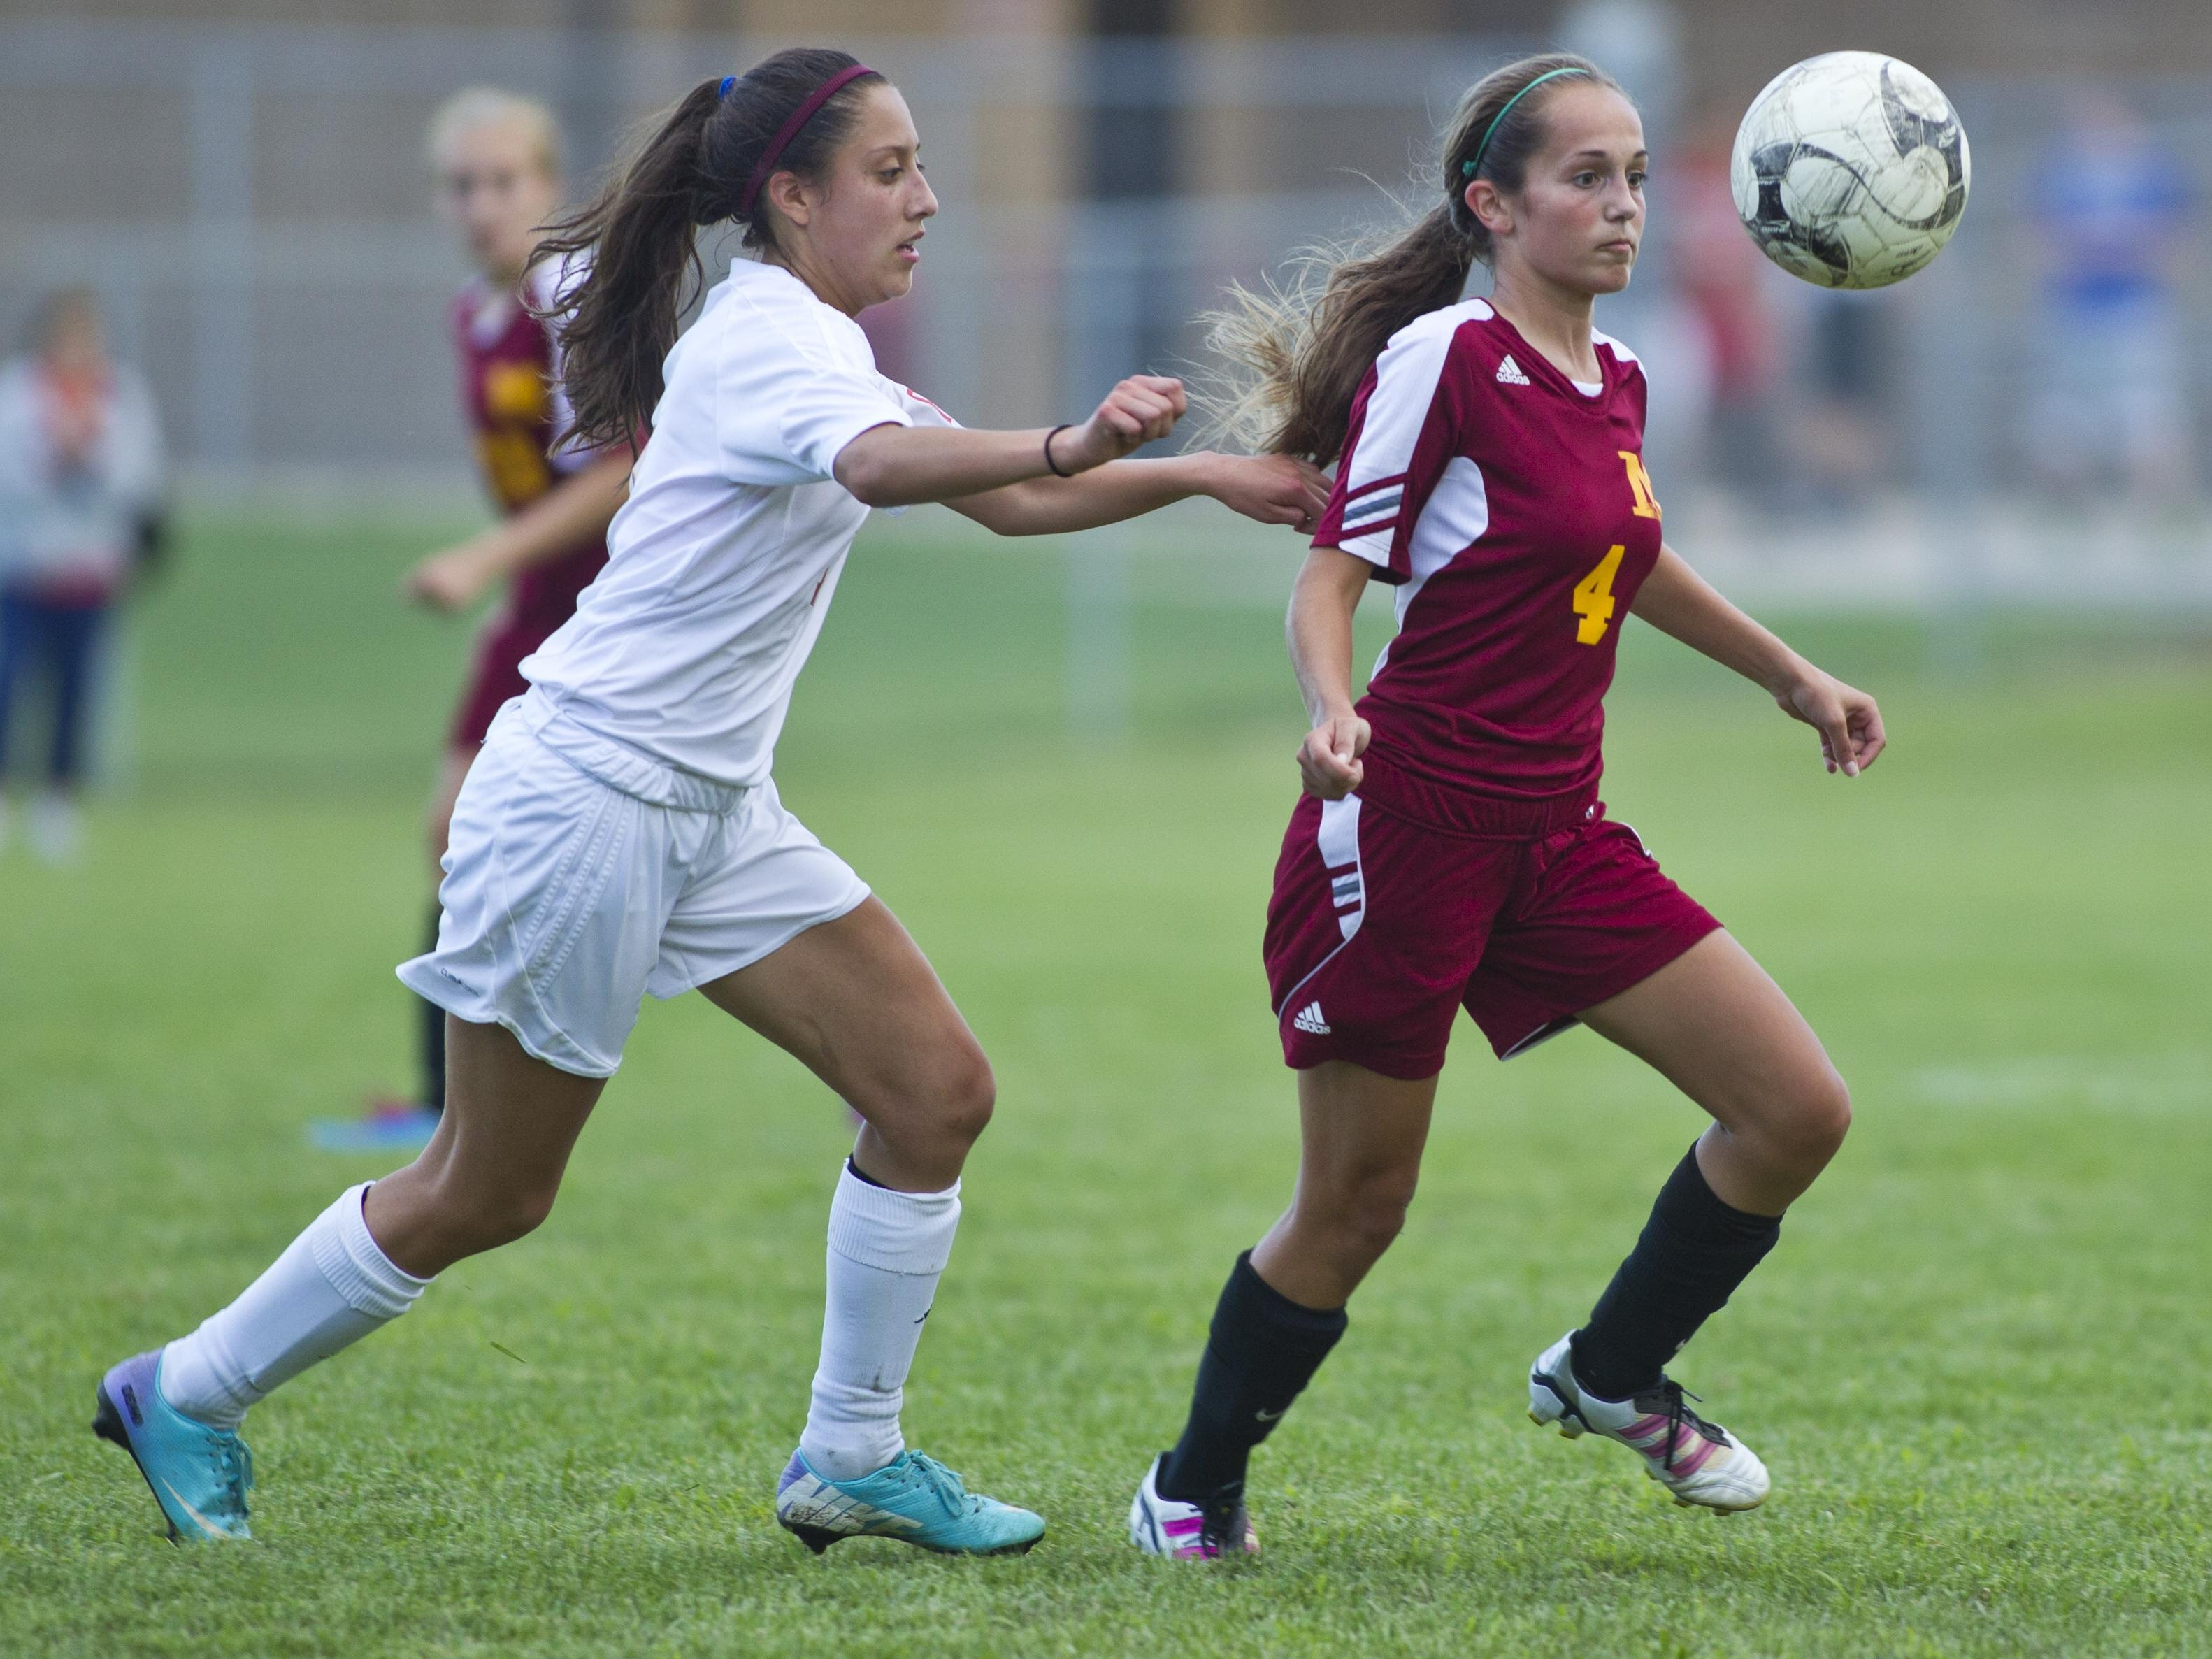 McCutcheon's MaKayla Merryman combats her small frame with quickness and ball handling skills to beat defenders.